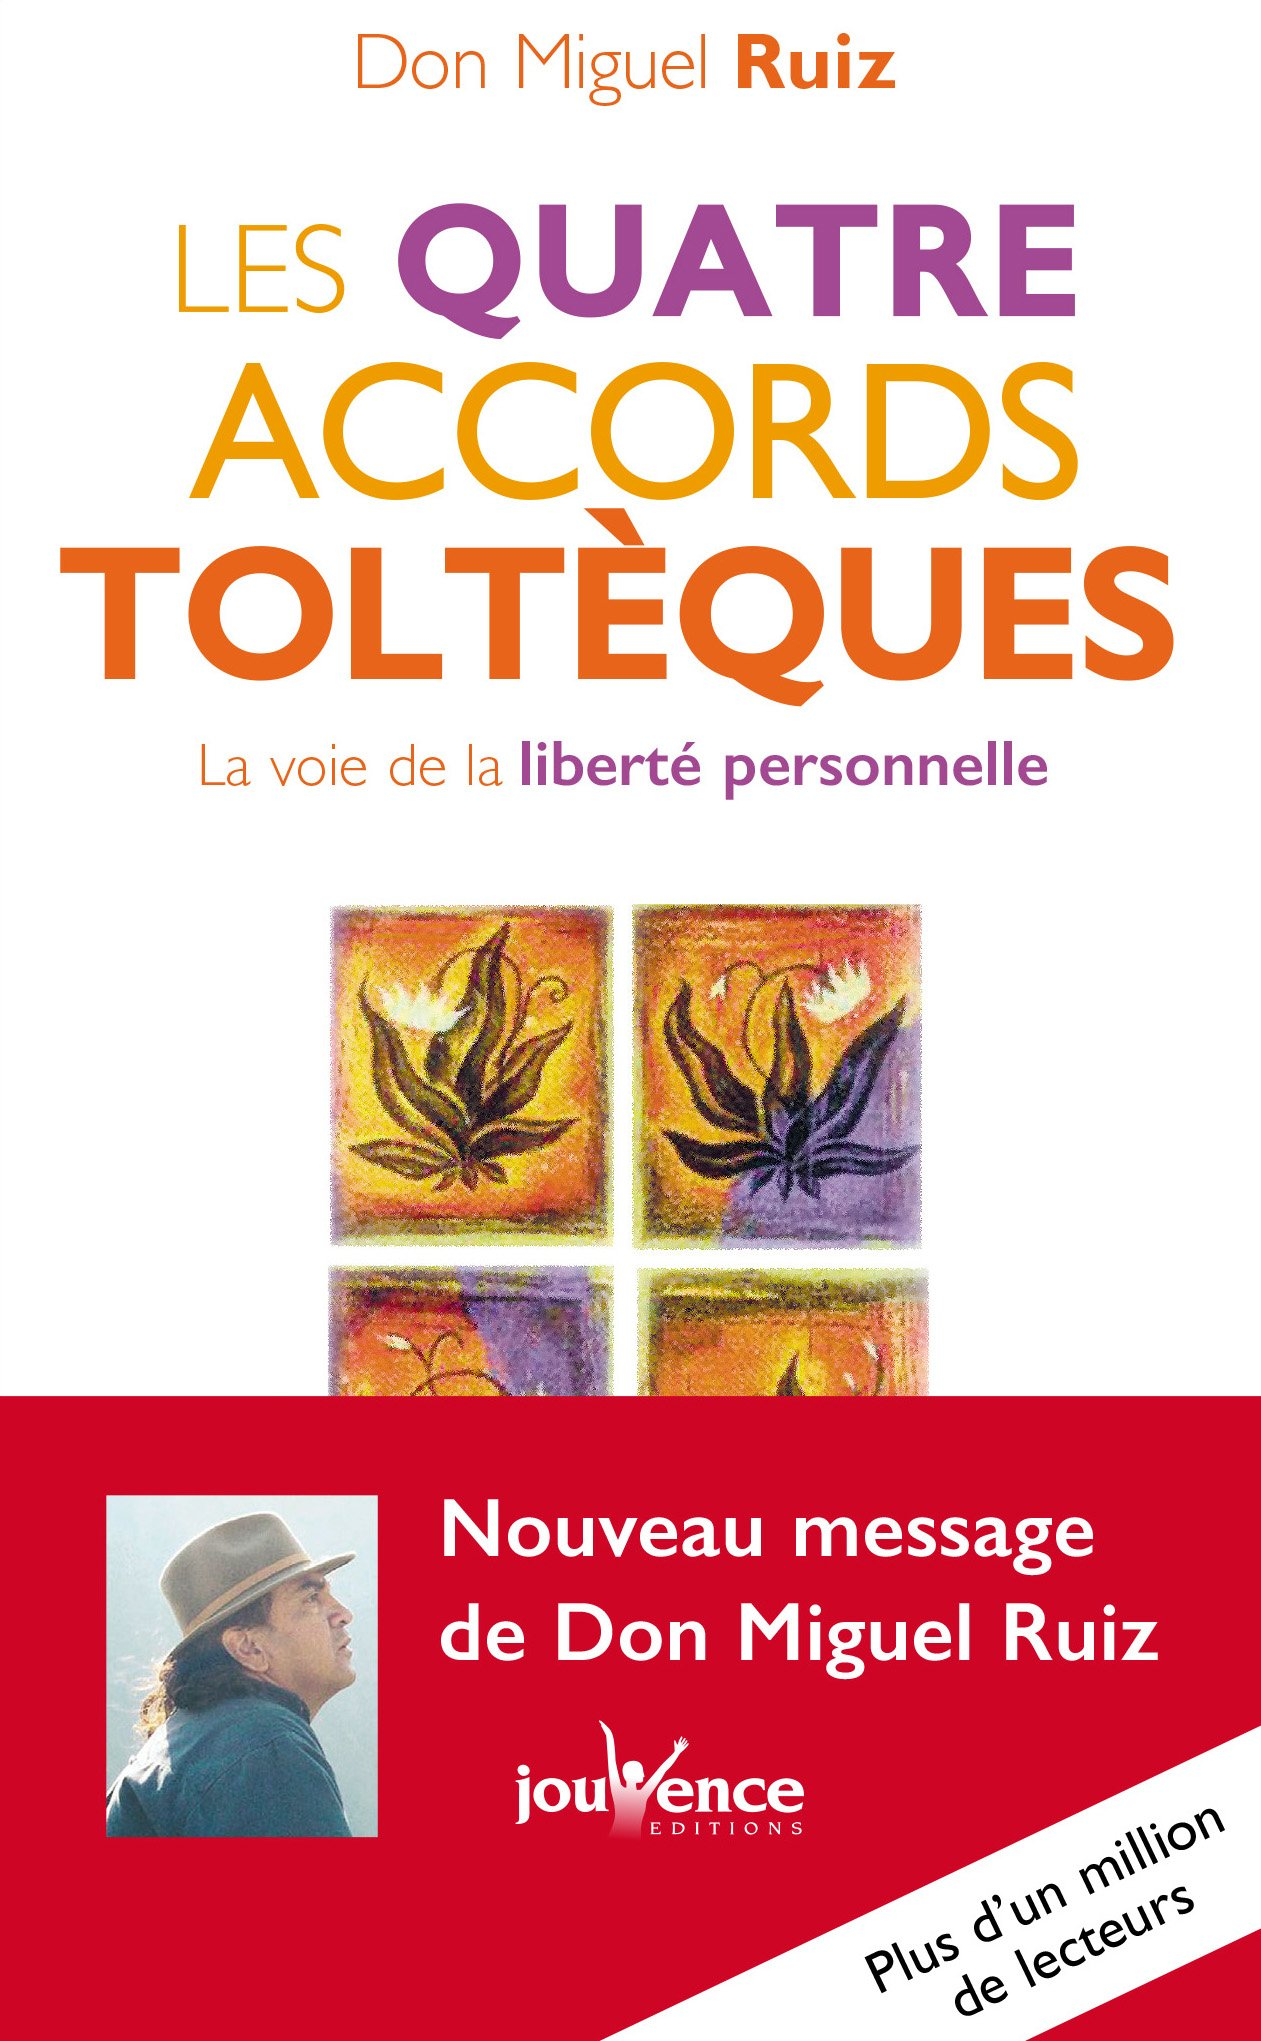 Les quatre accords toltèques - Don Miguel Ruiz